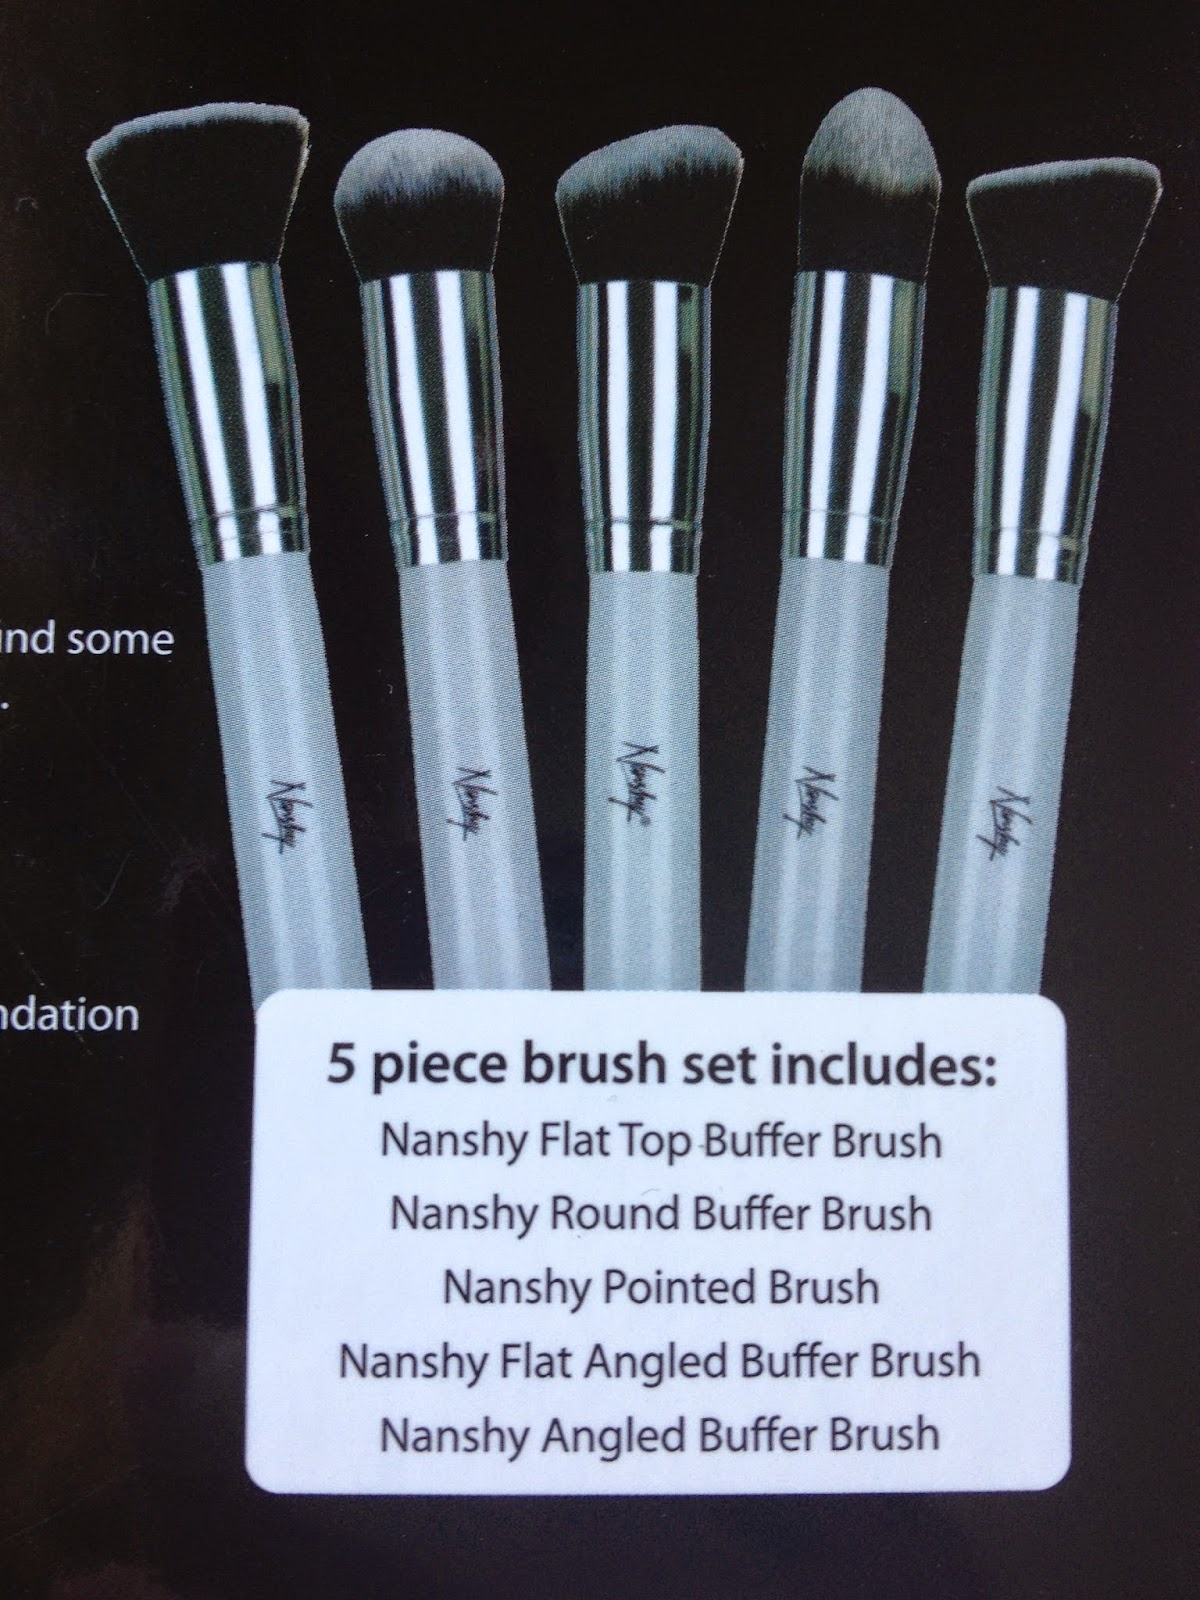 Nanshy foundation brushes review on Fashion and Cookies